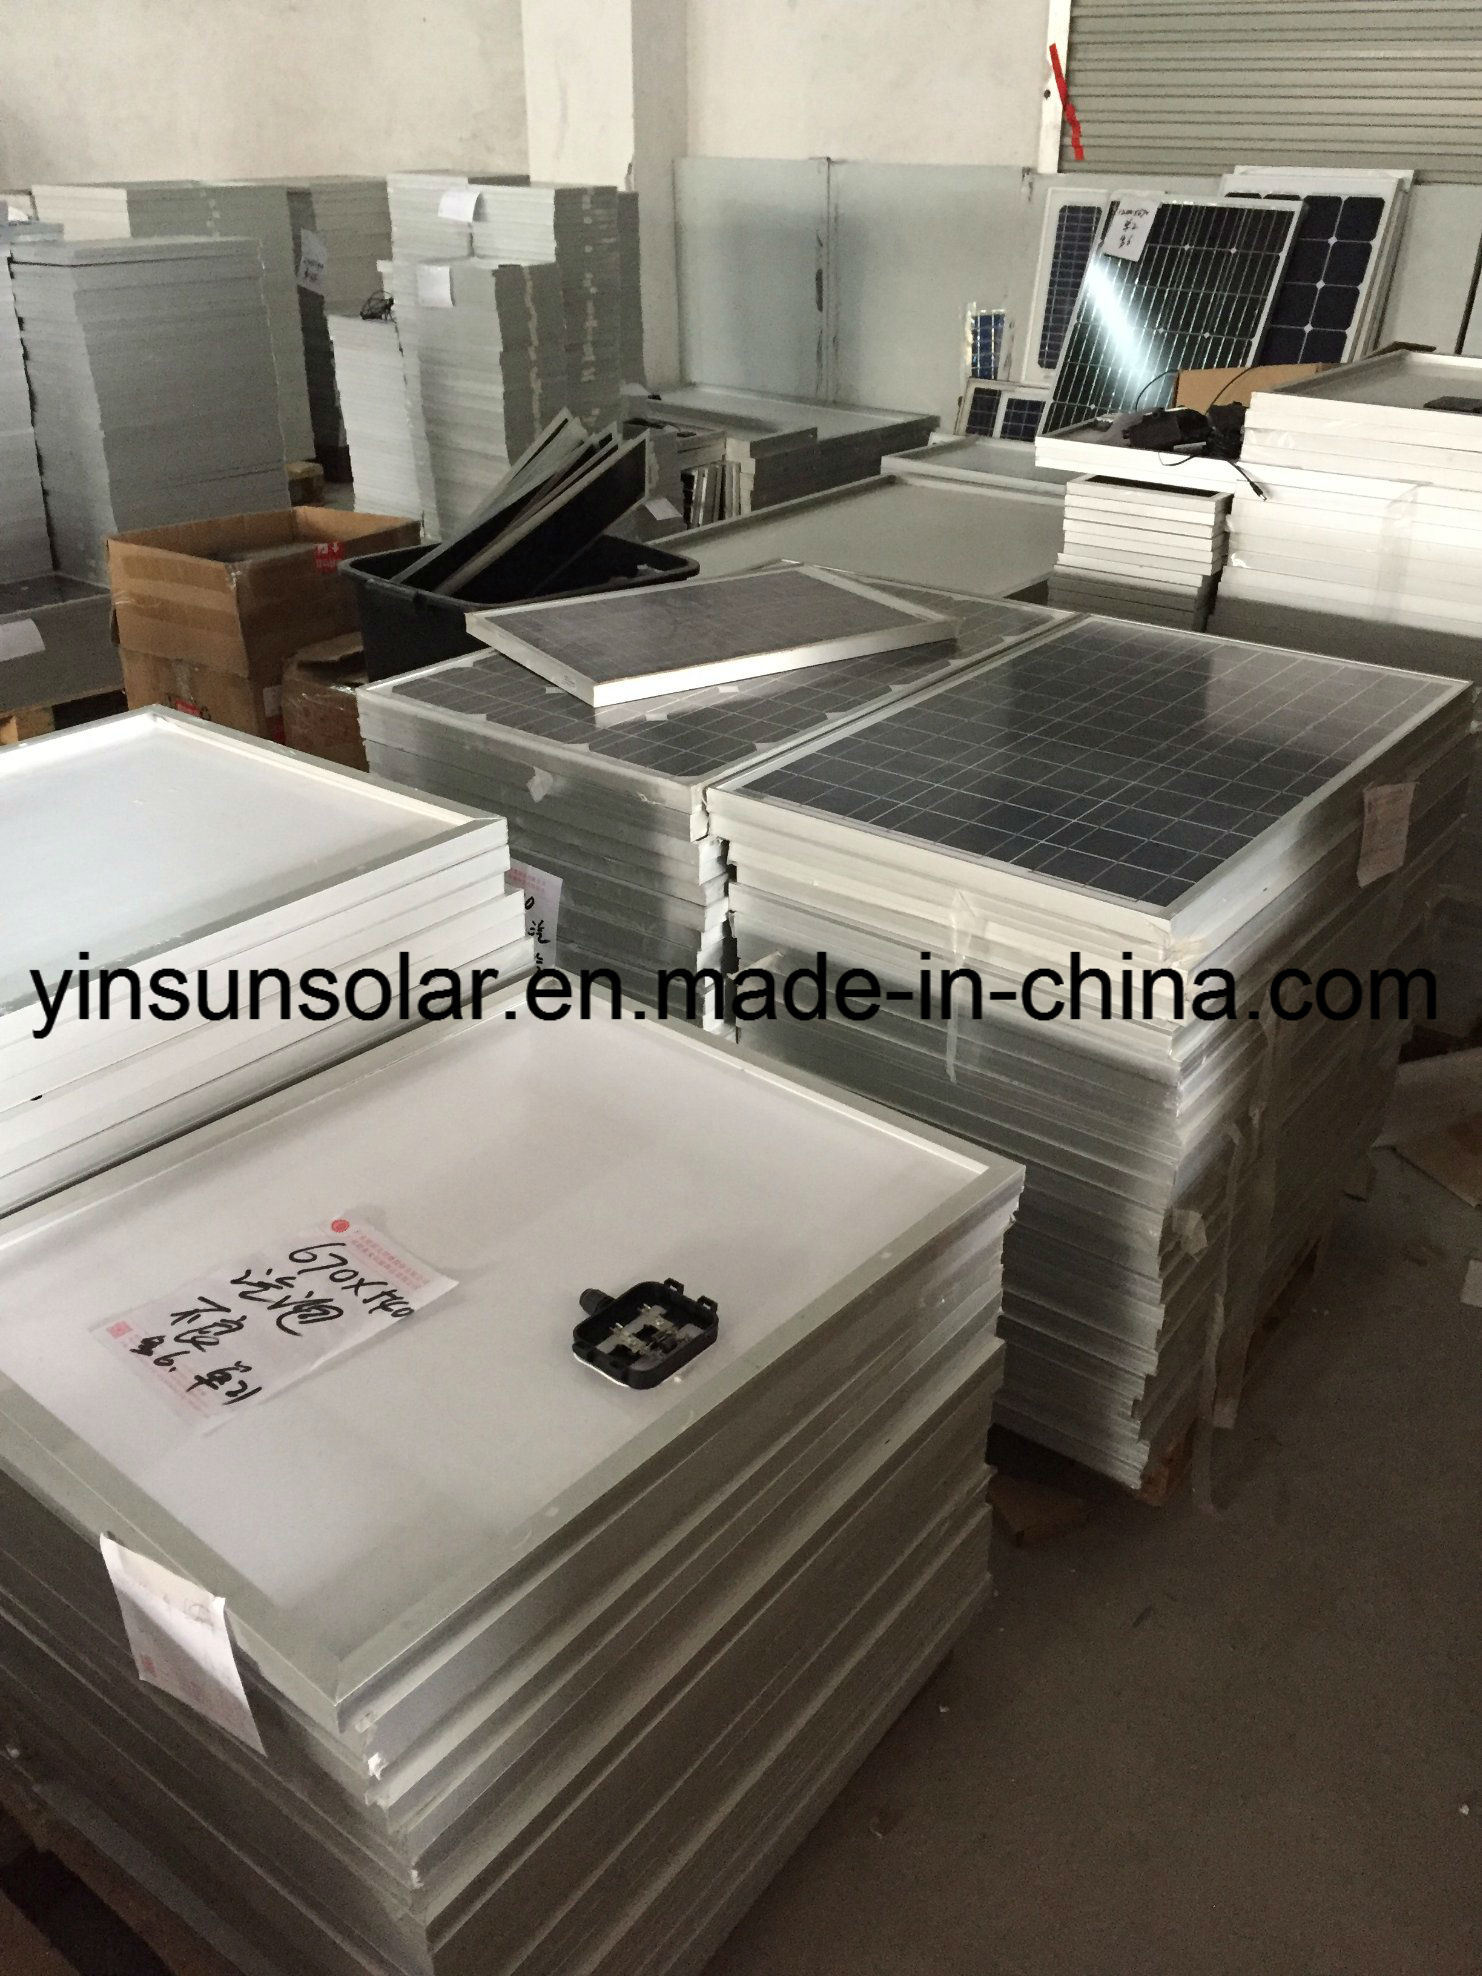 300W Monocrystalline PV Solar Power Flexible Photovoltaic Module Solar Panel